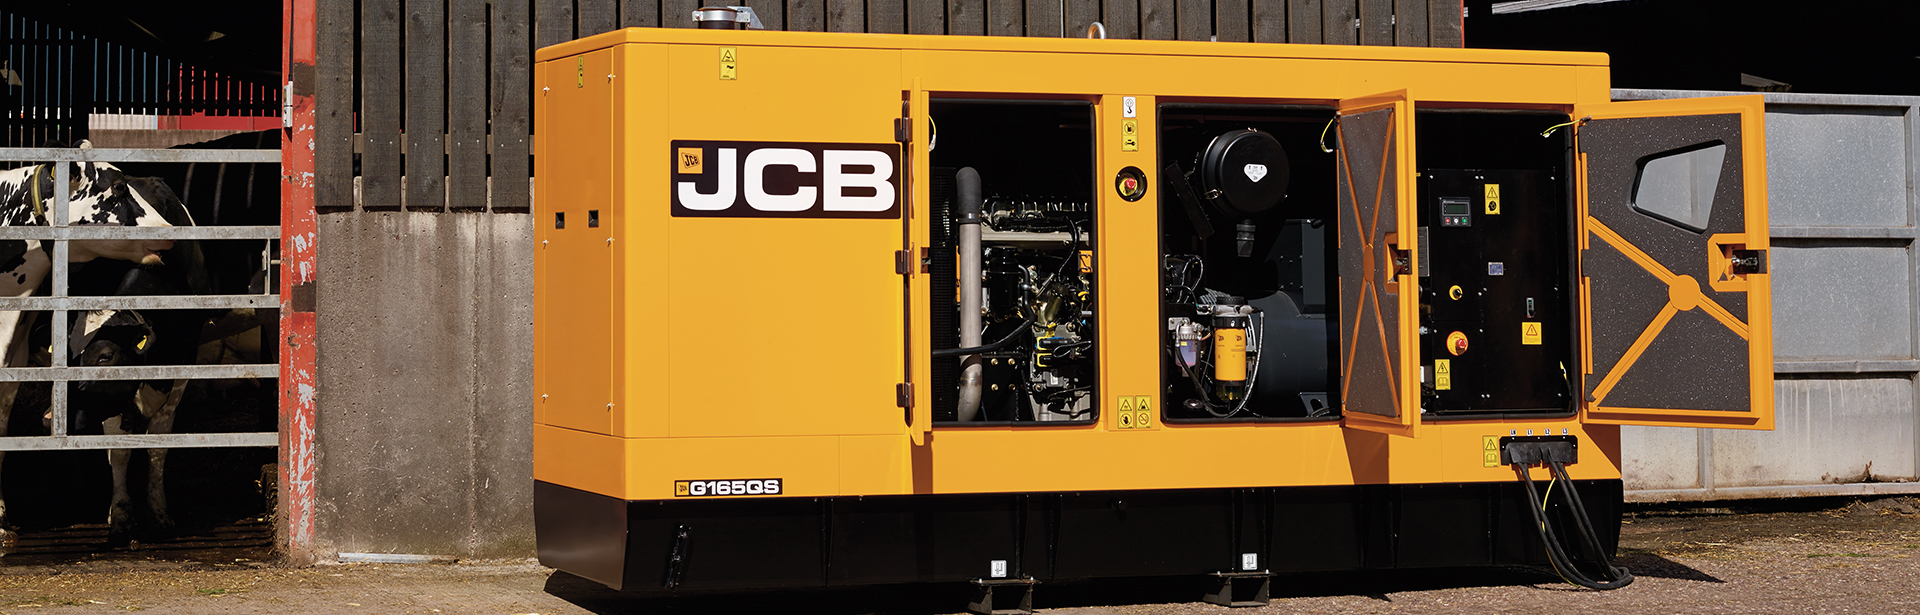 730-2500kVA Mitsubishi engine and specifications